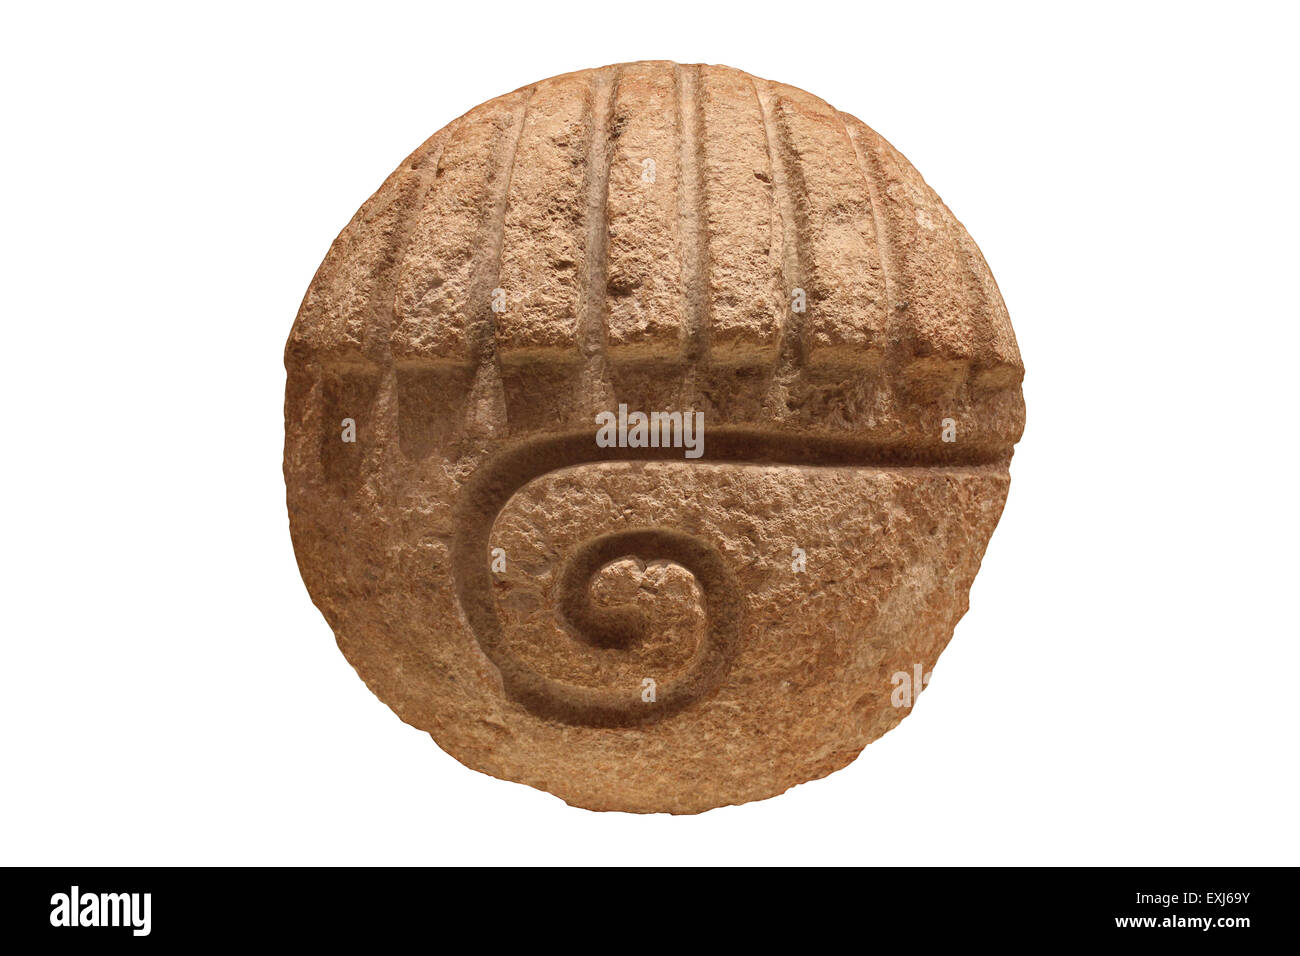 Mayan Sculpture Late Classic Period AD 600-900 Unknown Provenance - Stock Image